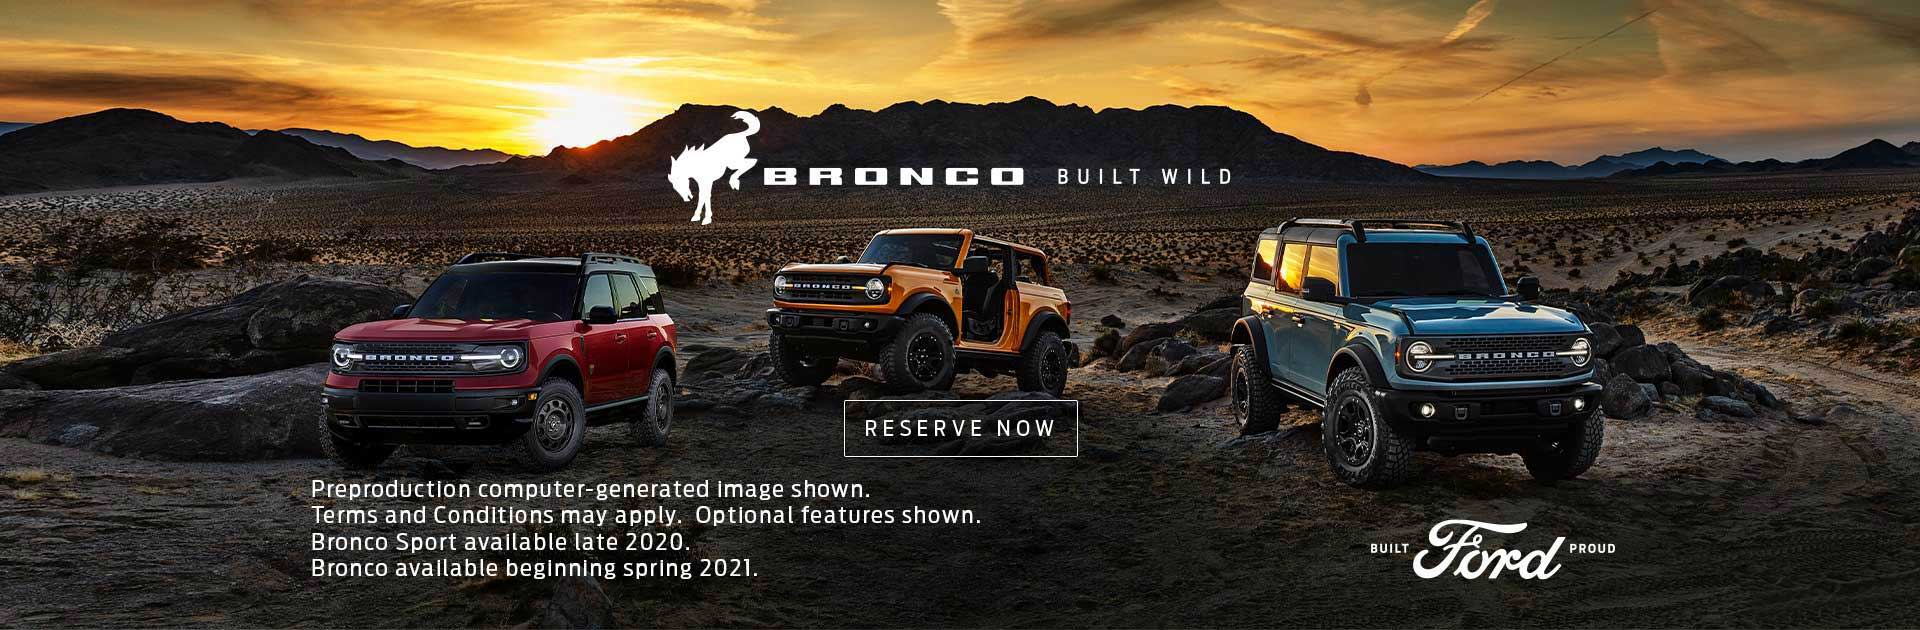 Bronco Reveal Dealercon 1920x630 V51